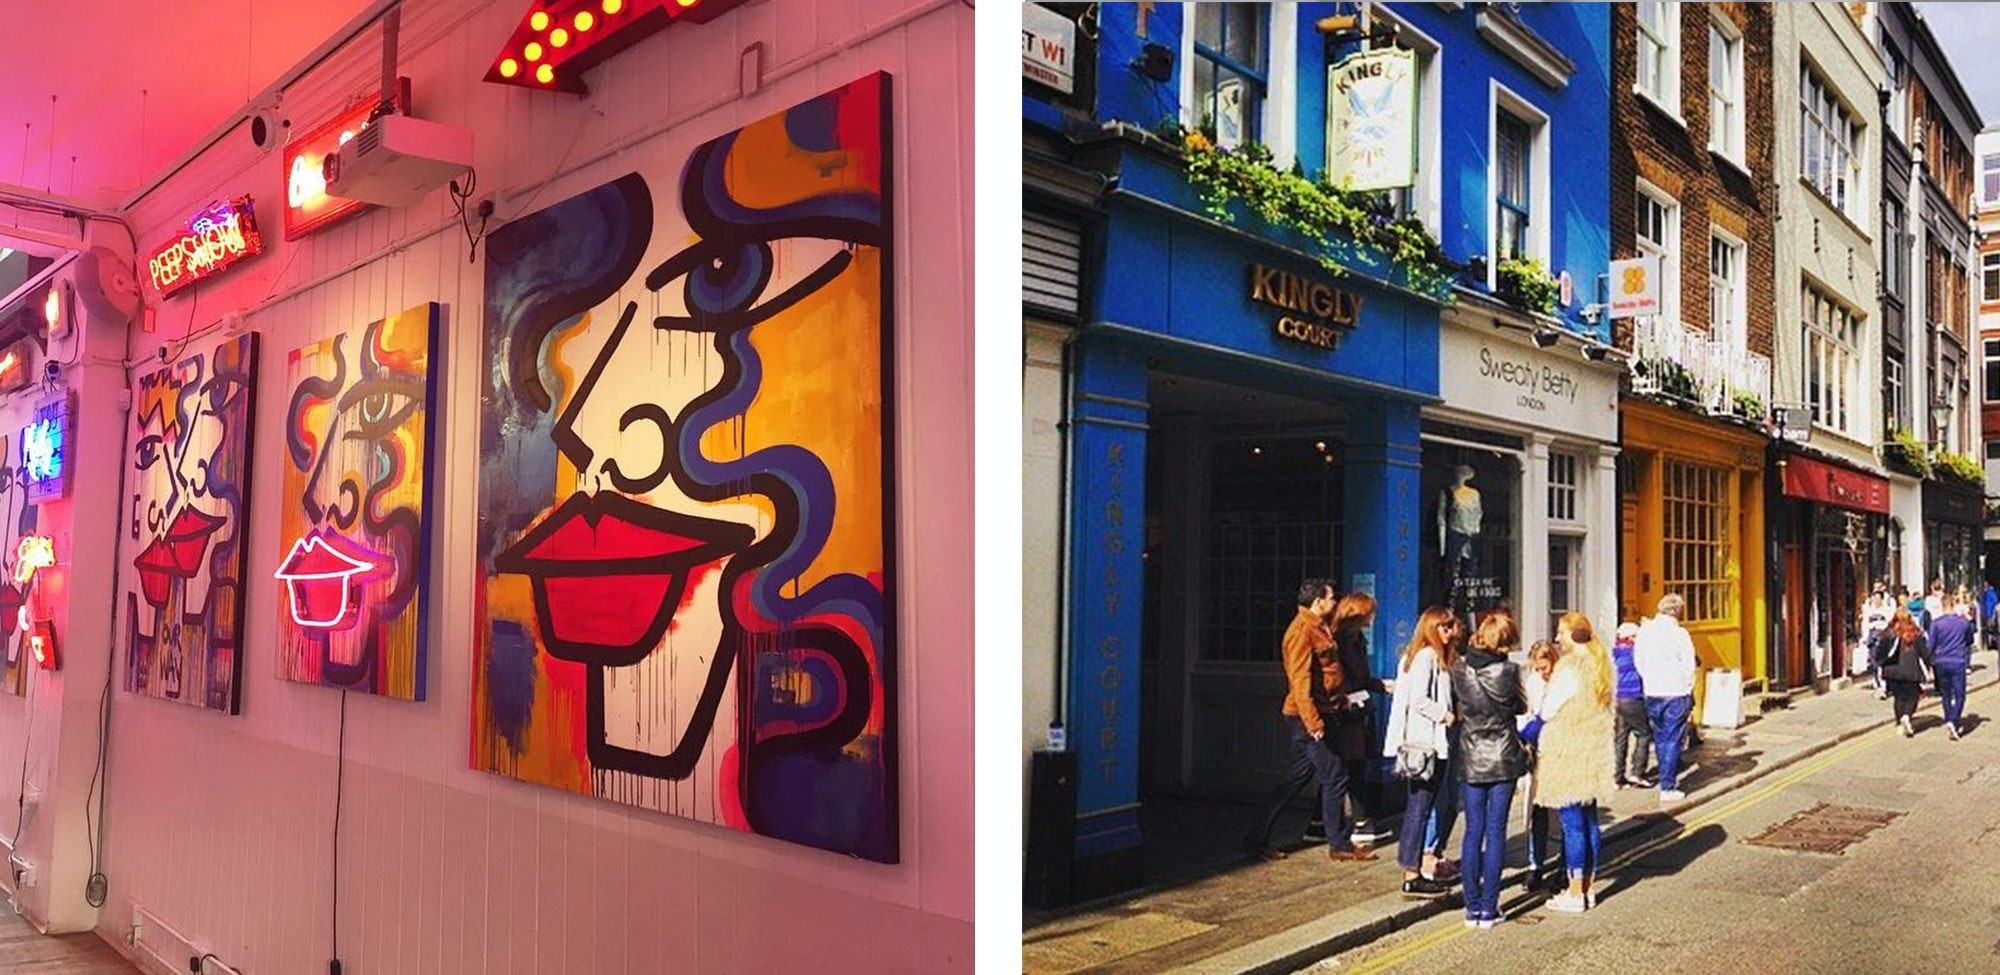 Soho has everything that a young adult in London could possibly want, we made a list but wandering around aimlessly is equally pleasant.